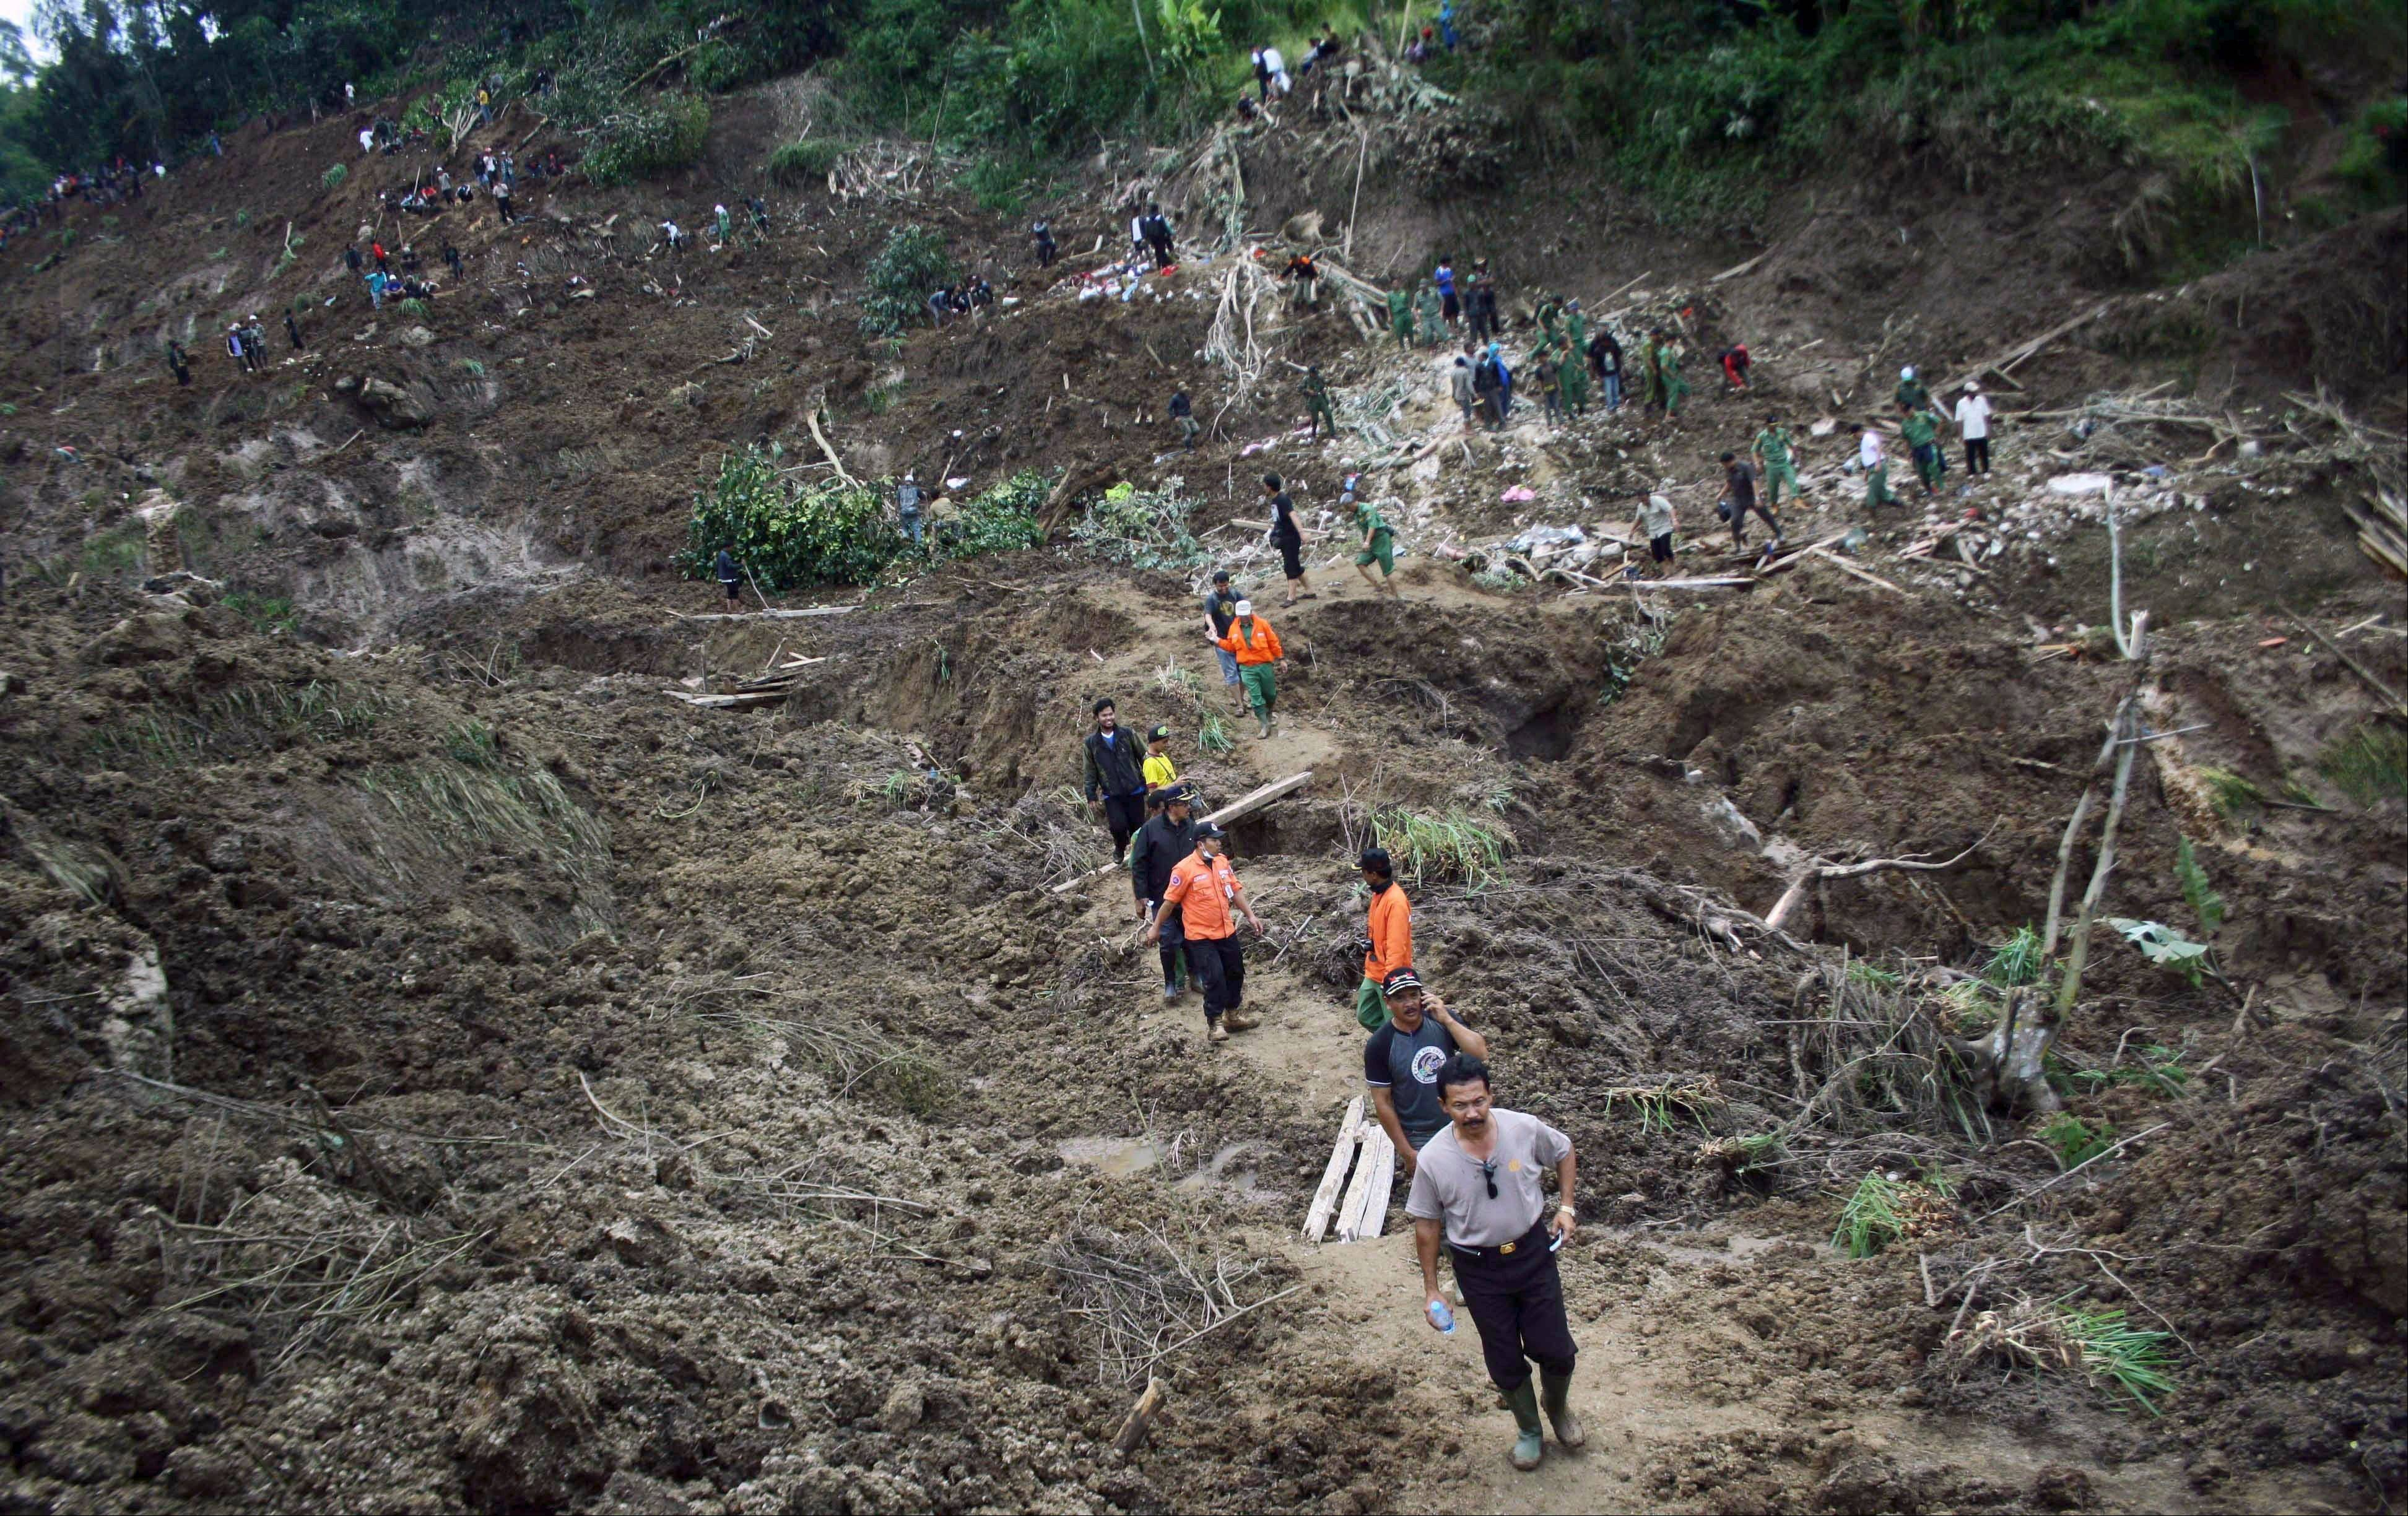 Rescuers search for victims at a village that was hit by a landslide in Cililin, West Java, Indonesia, Monday.